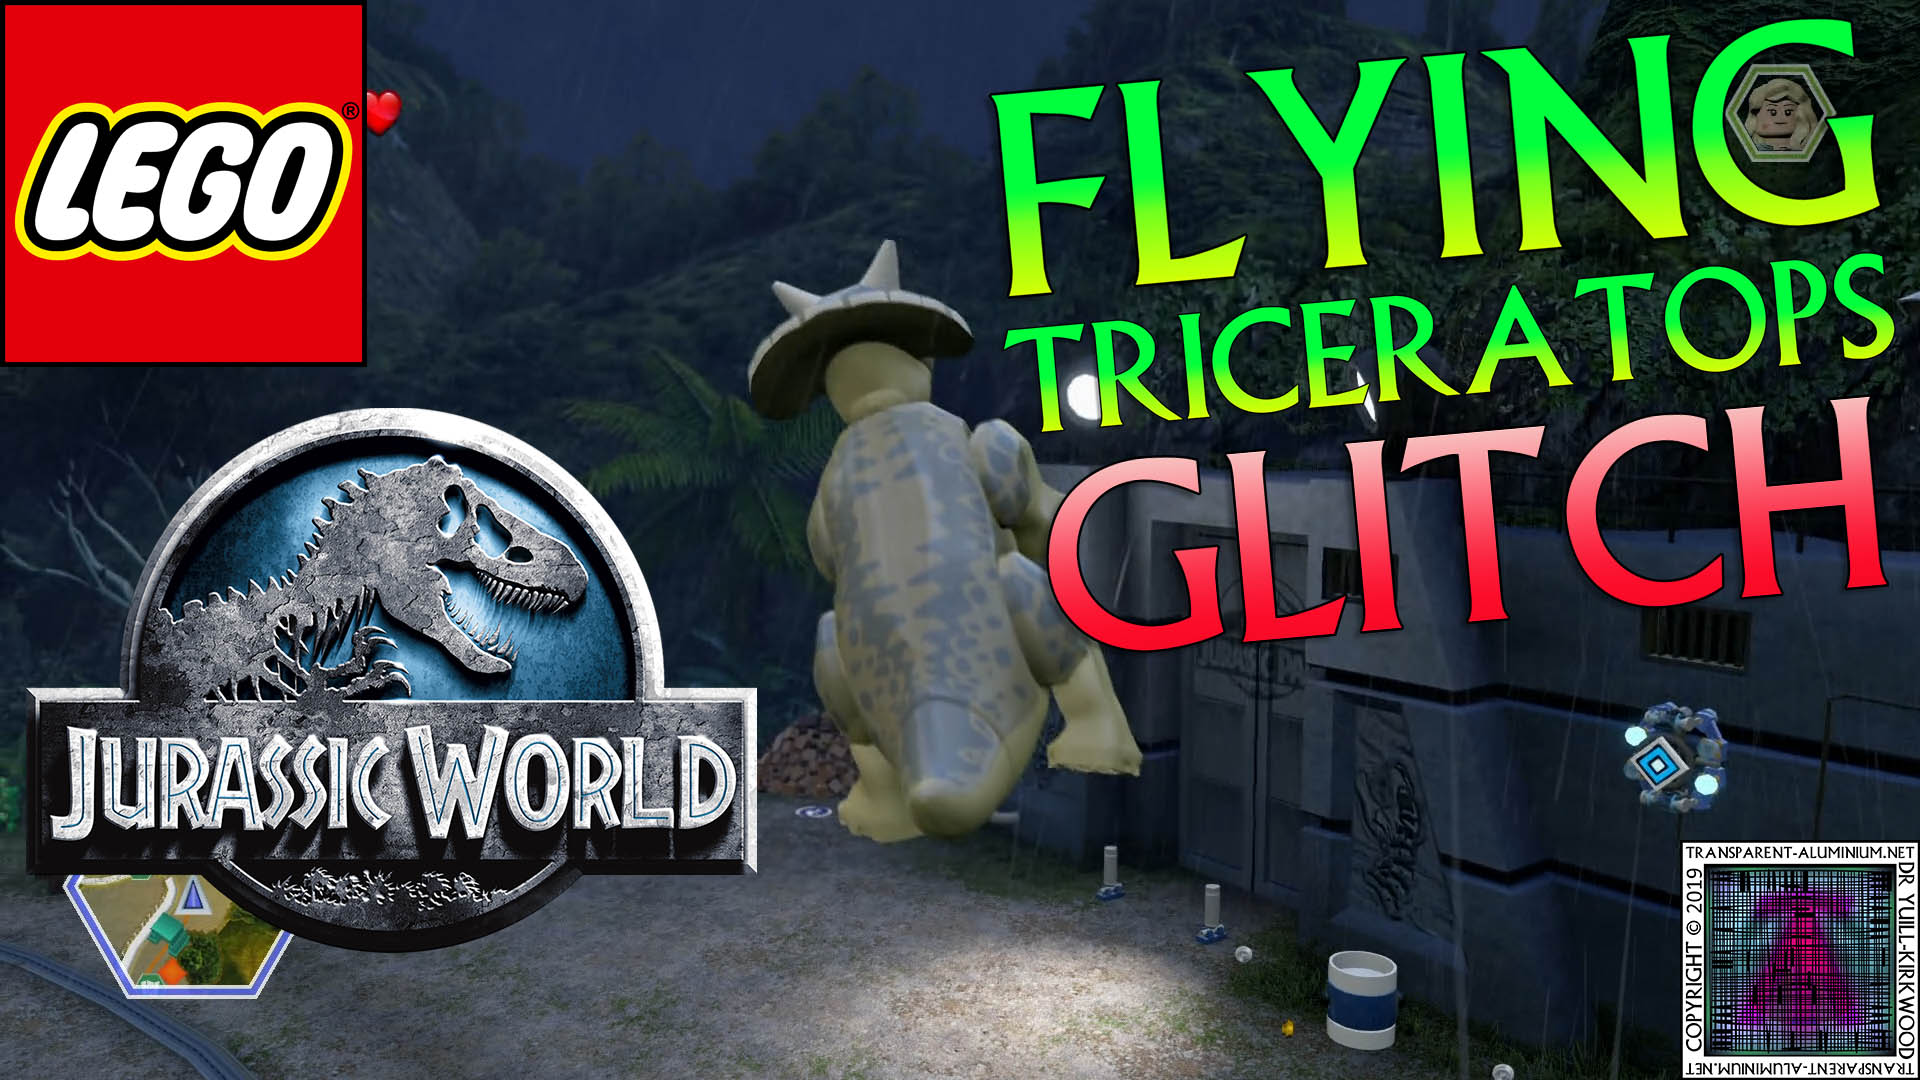 LEGO Jurassic World: Flying Triceratops Glitch | Transparent